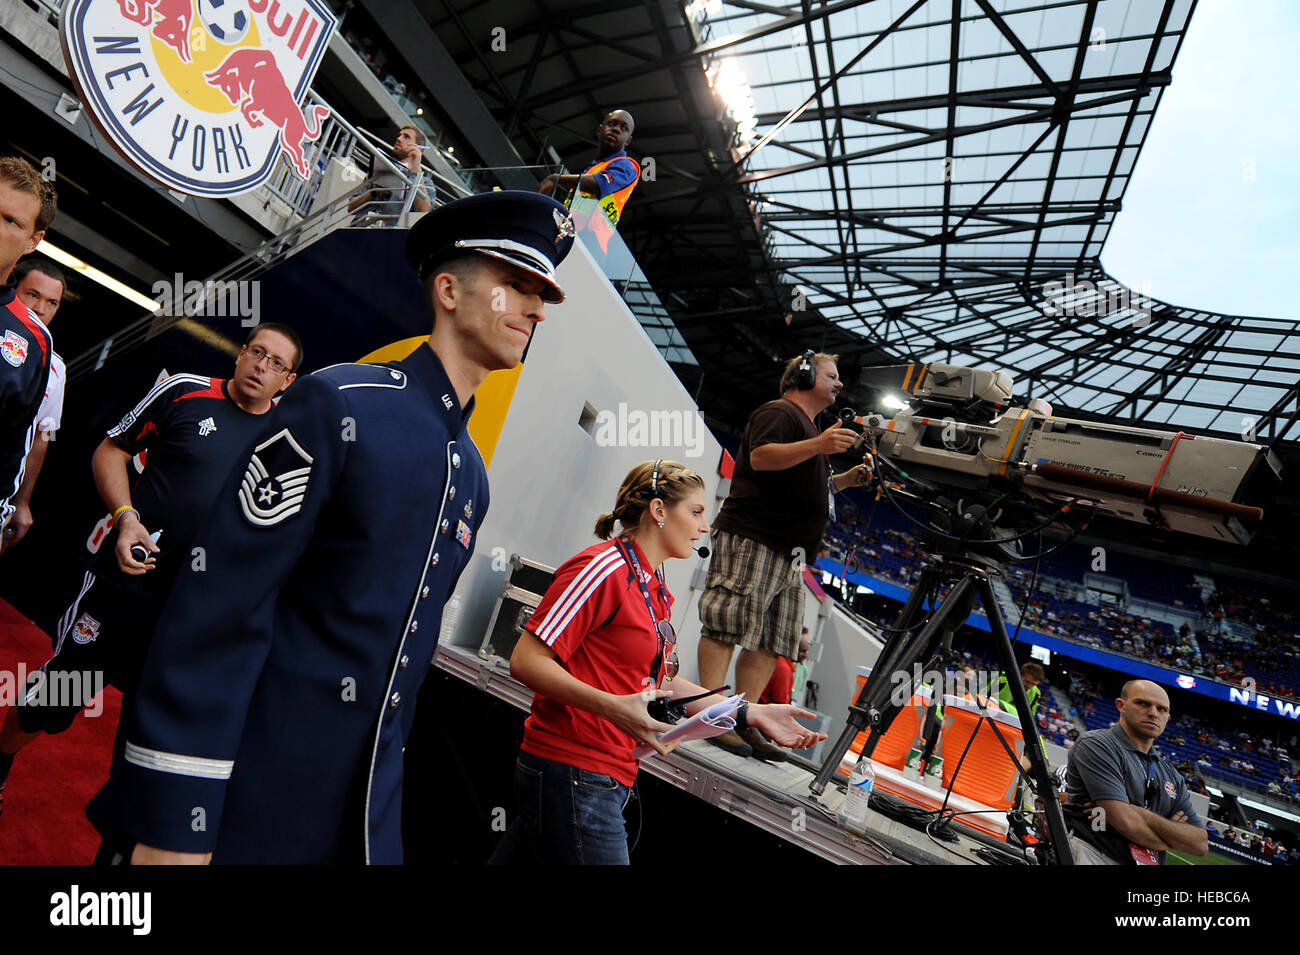 A U.S. Air Force member prepares to sing the National Anthem before a Major League Soccer match as part of Air Force - Stock Image